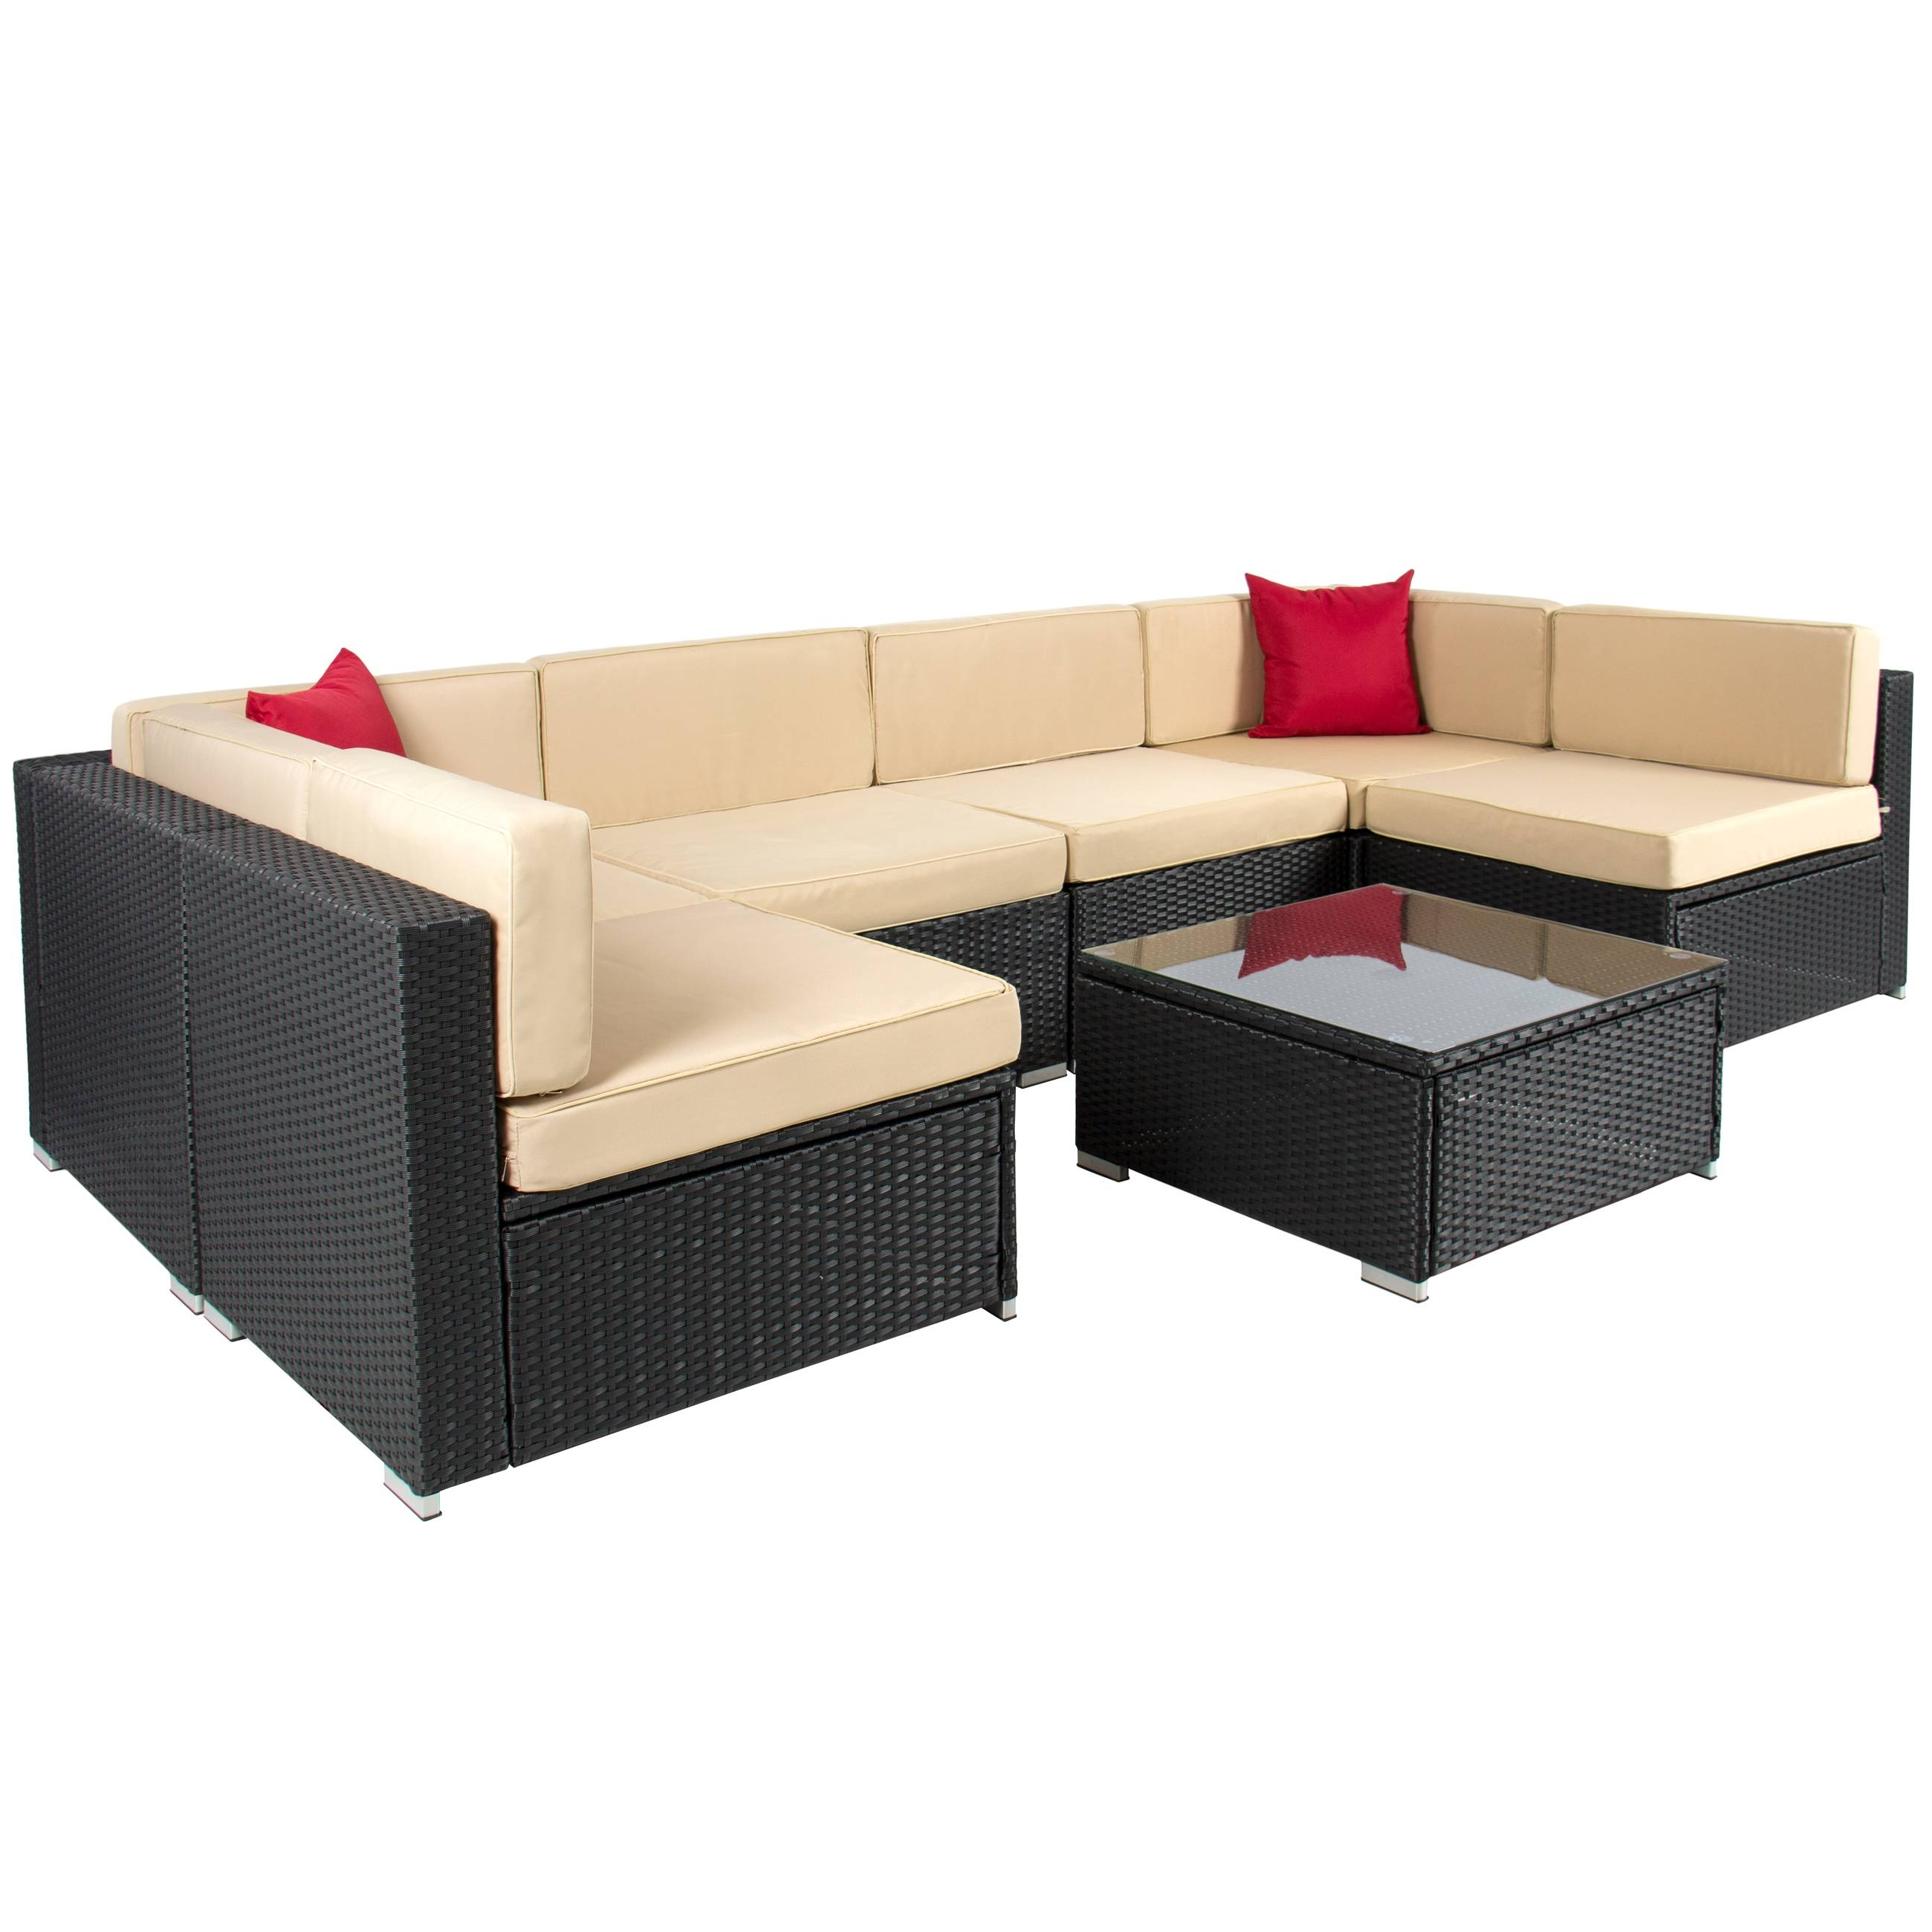 Furniture: Outdoor Sectional Sofa With Outdoor Patio Garden Wicker intended for Modern Rattan Sofas (Image 15 of 30)